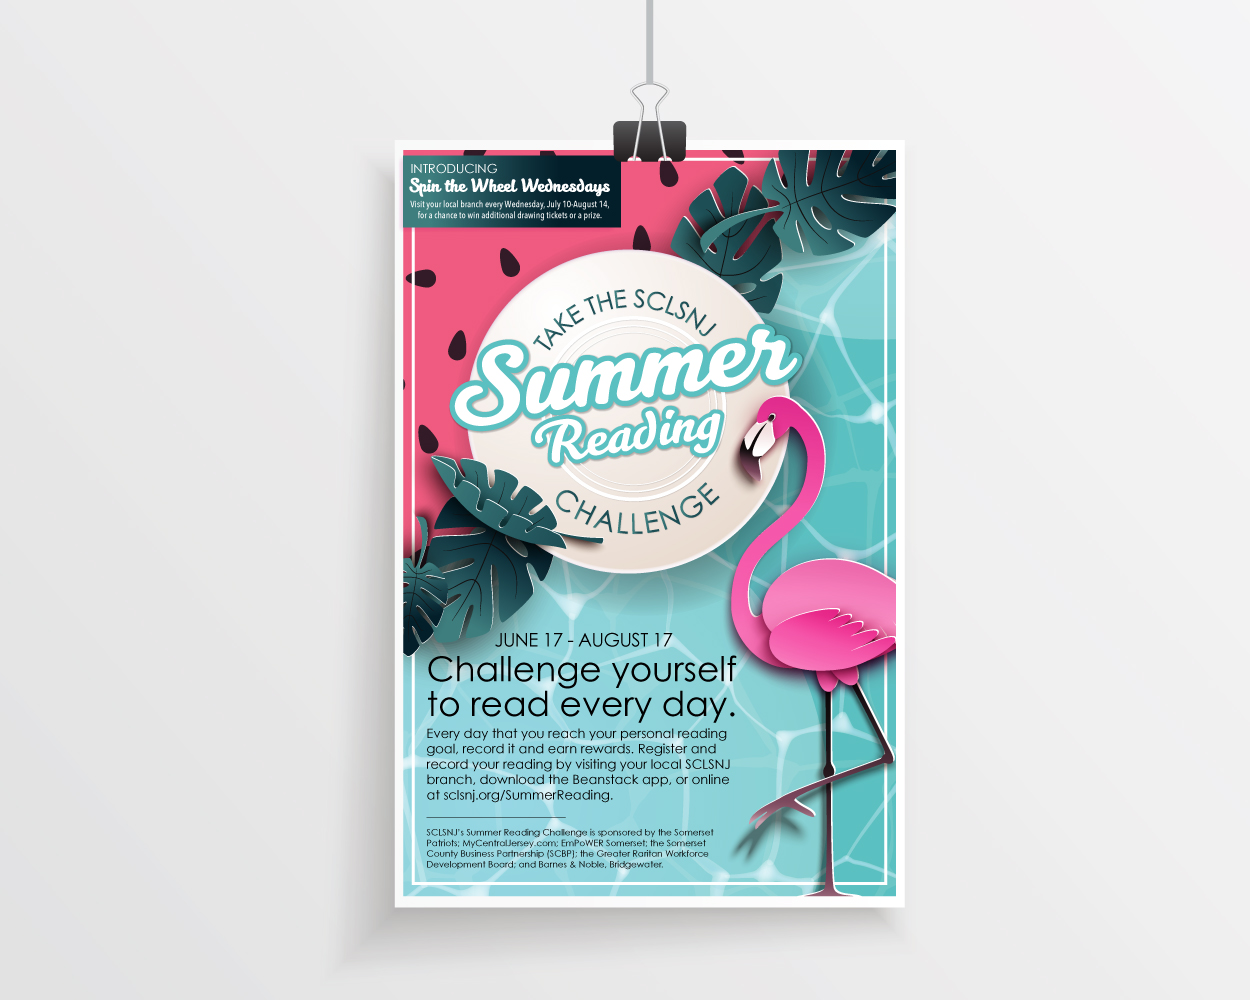 Now Streaming, Summer Reading [Summer Reading Challenge at SCLSNJ / 2019] created by Carolann DeMatos